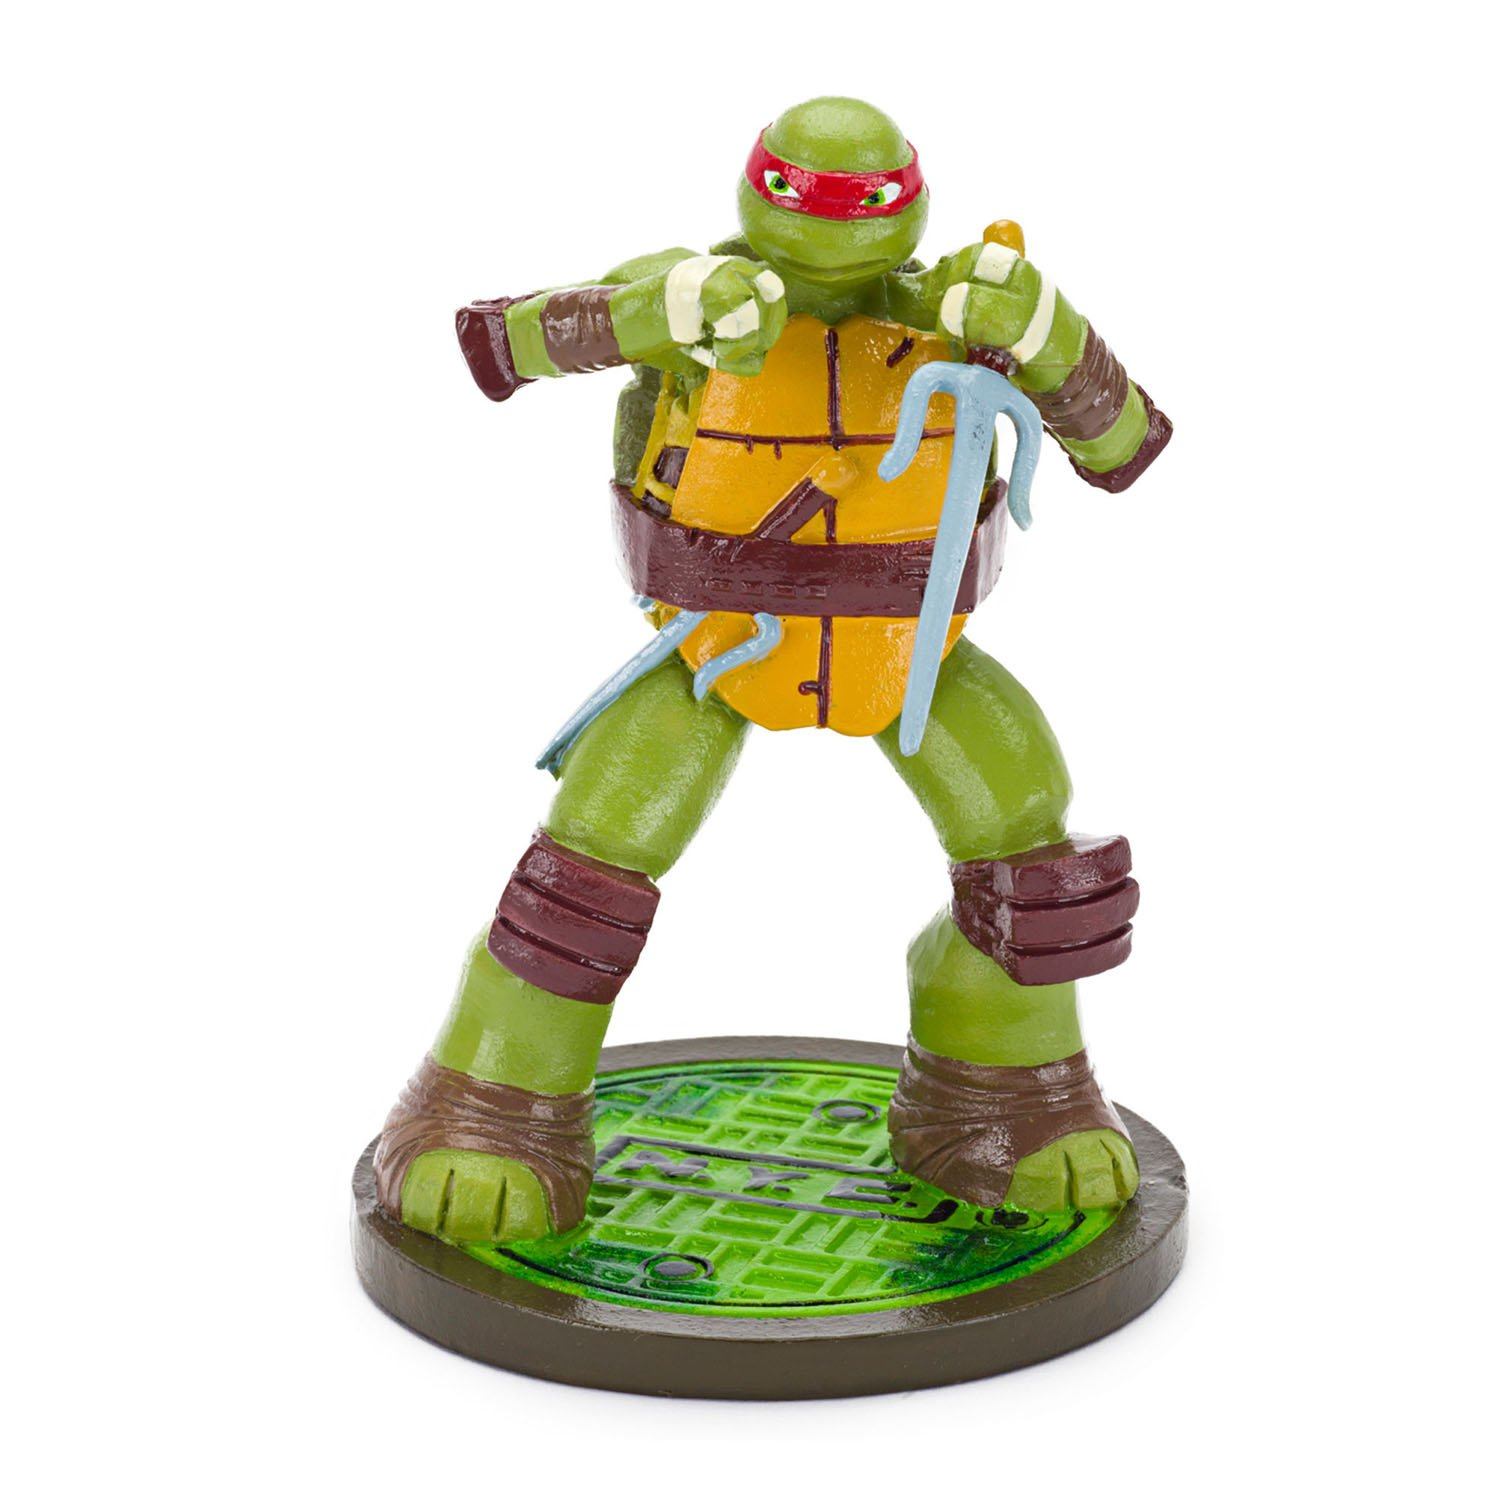 Penn Plax Teenage Mutant Ninja Turtles Raphael Aquarium Ornament